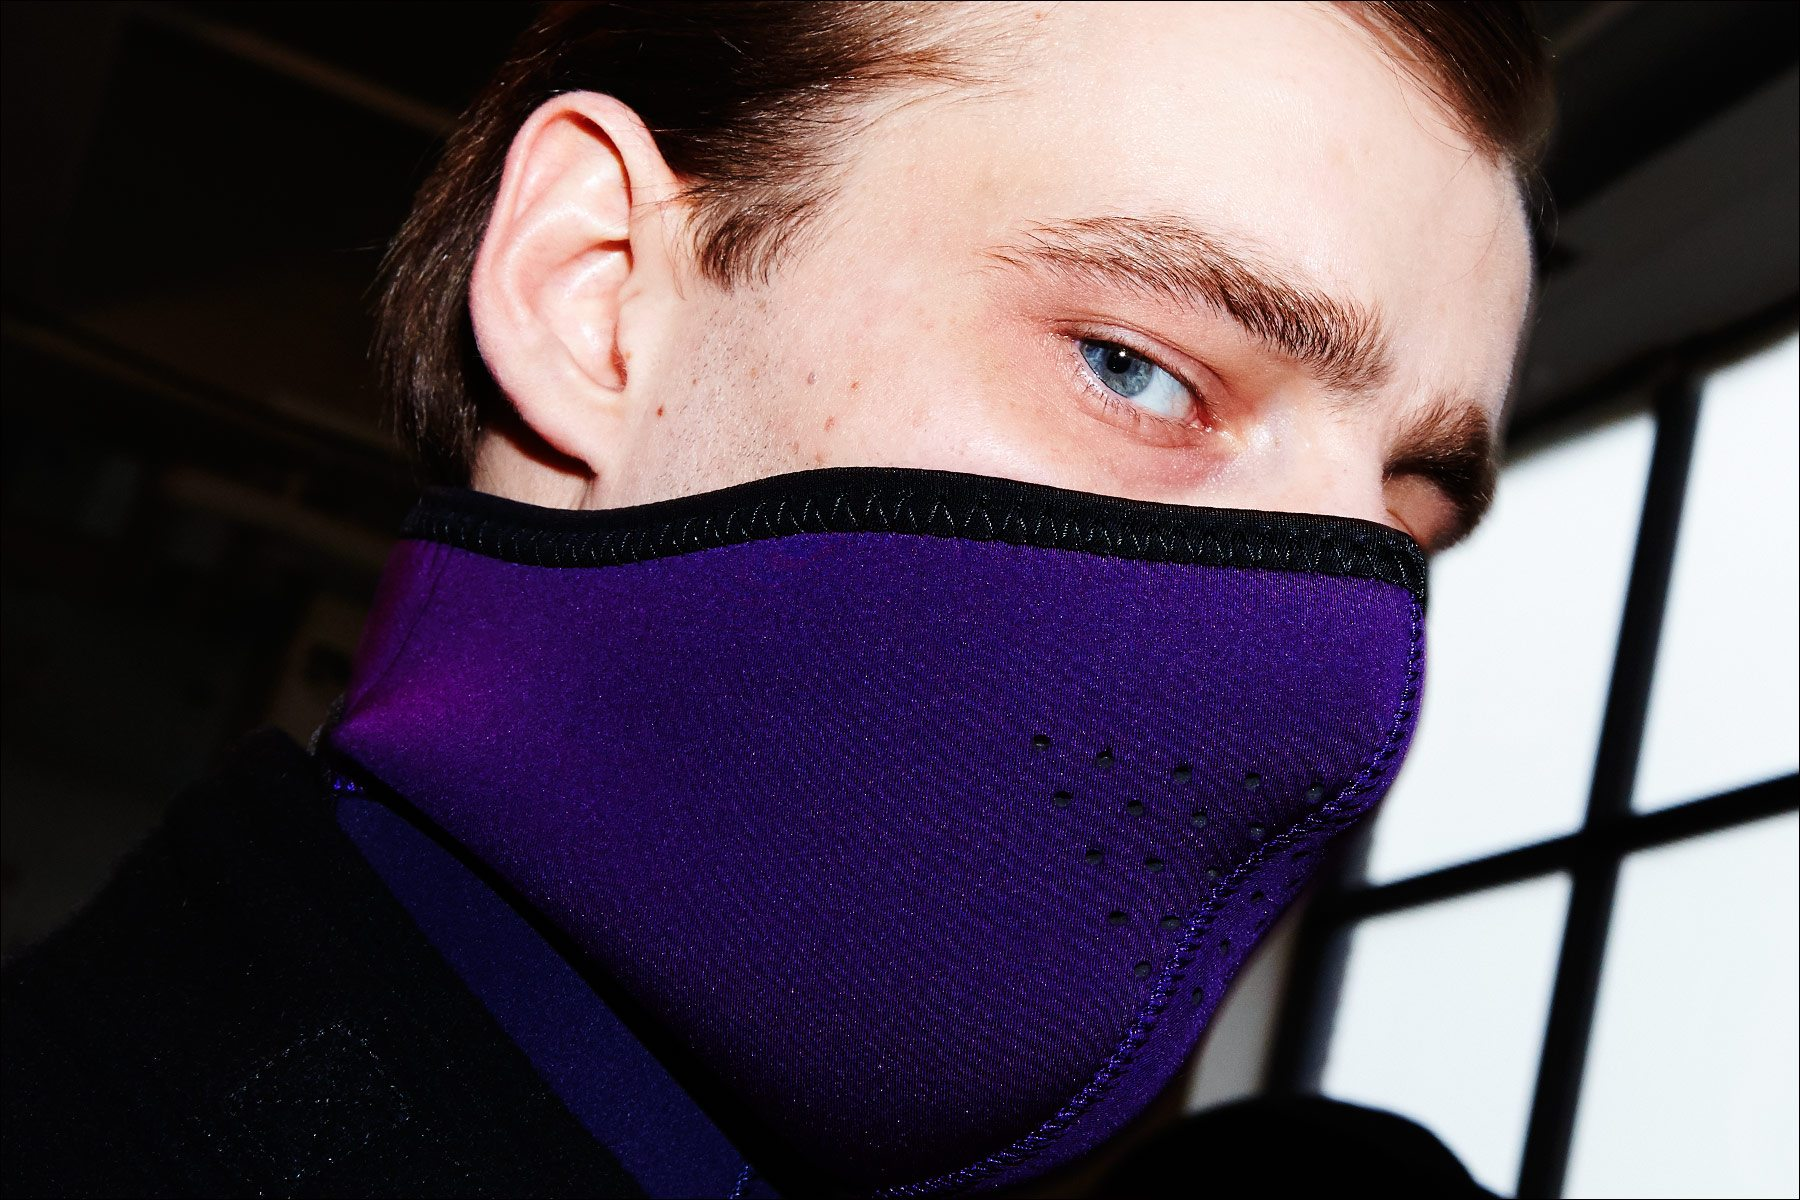 Model Laurie Harding snapped backstage in a face mask at Robert Geller Autumn/Winter 2017 menswear show. Photographed by Alexander Thompson for Ponyboy magazine NY.